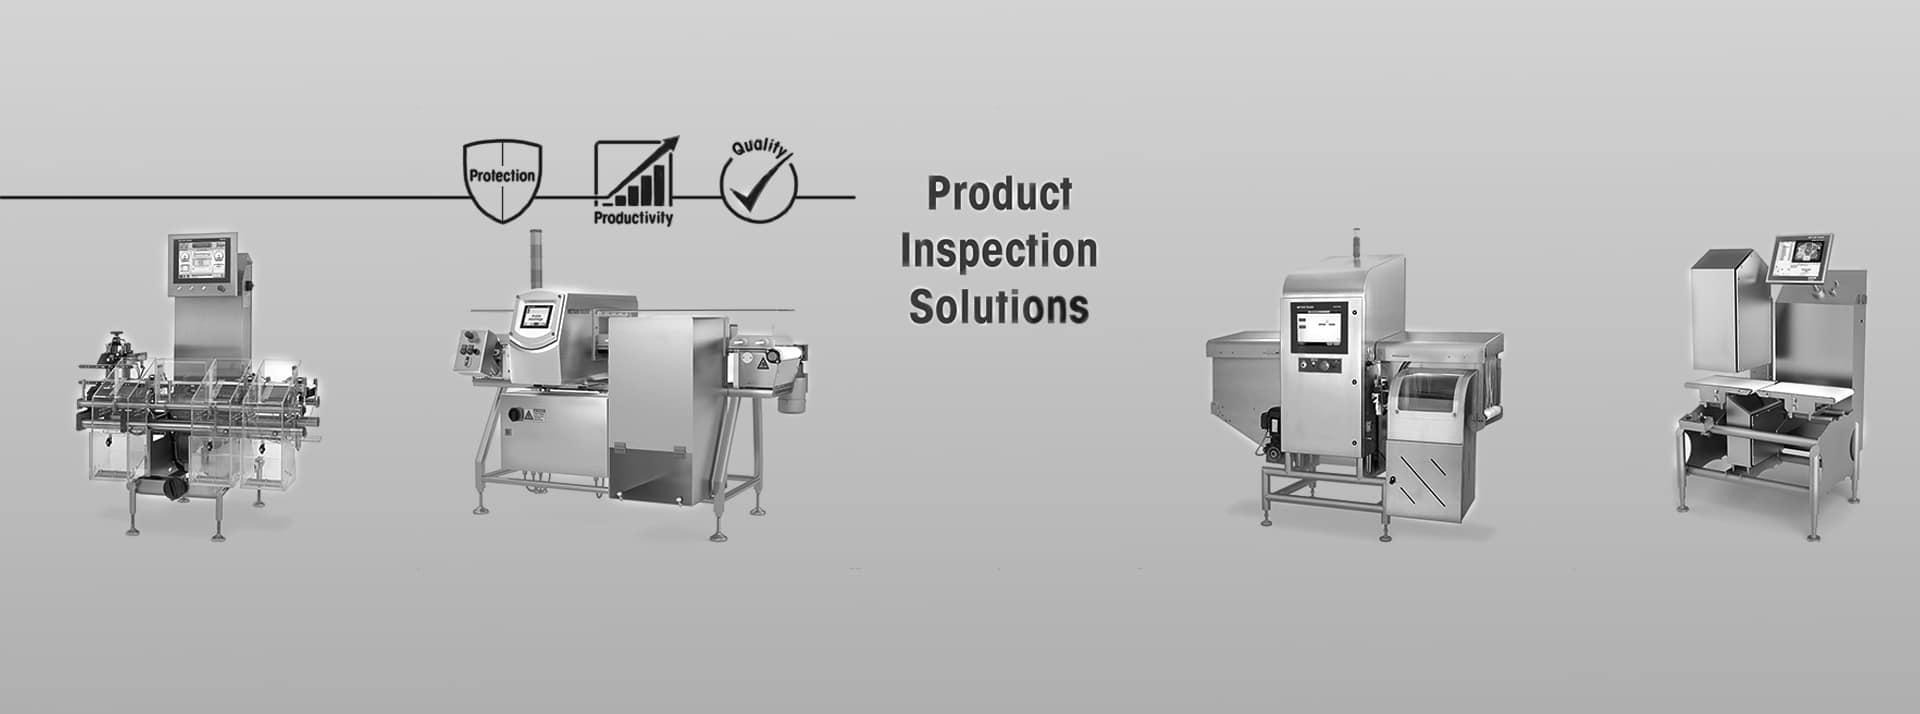 Mettler Toledo inspection system, product inspection system, metal detector, X-ray inspection system, checkweigher